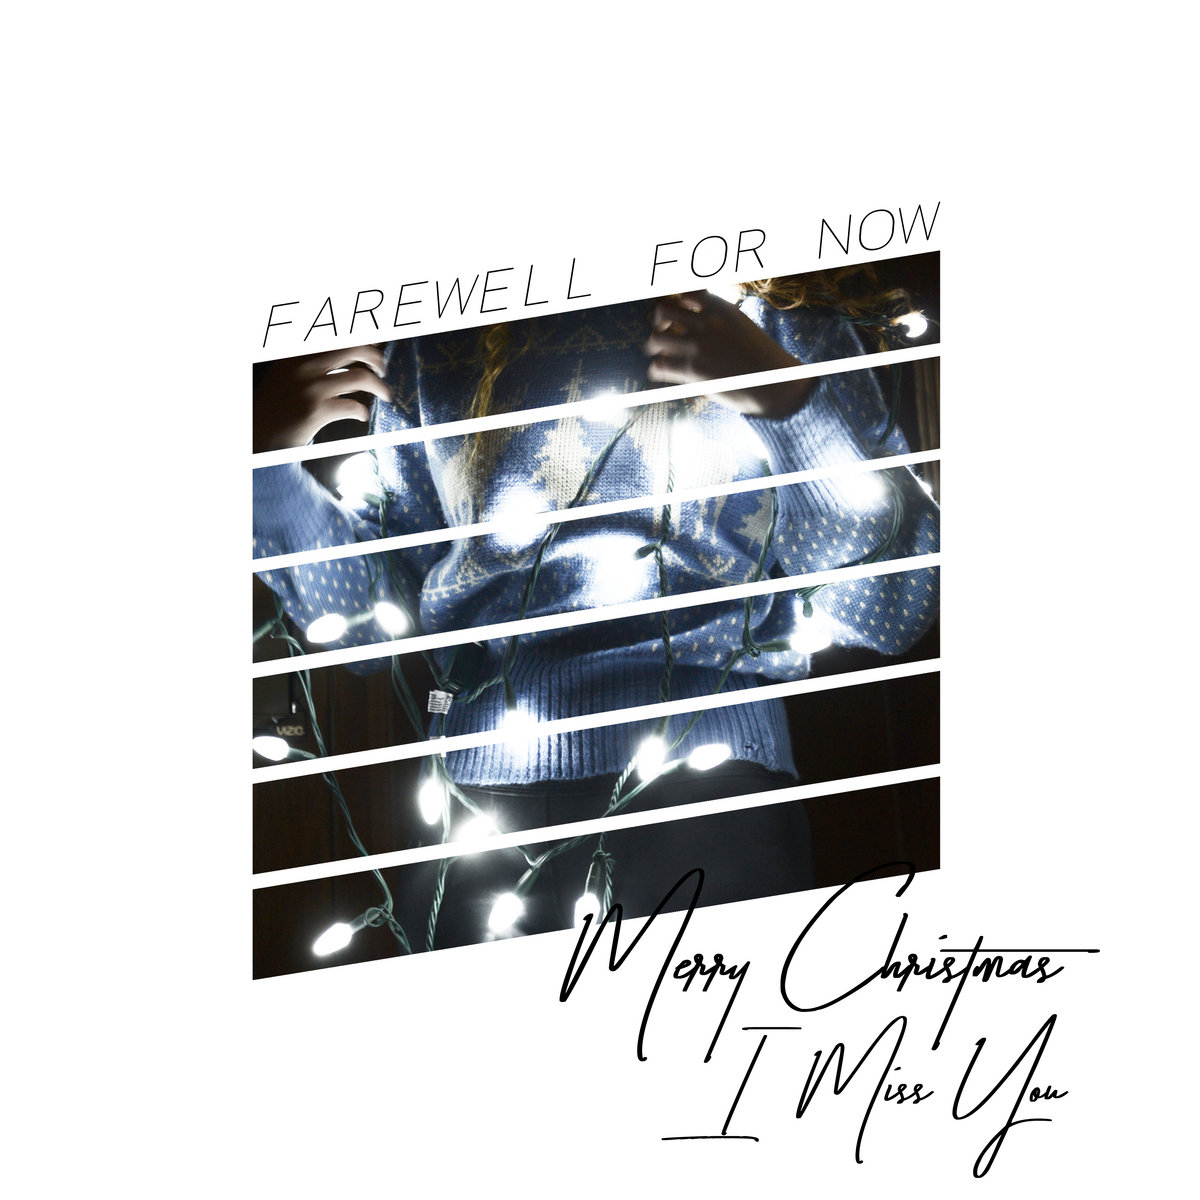 Merry Christmas, I Miss You | Farewell For Now